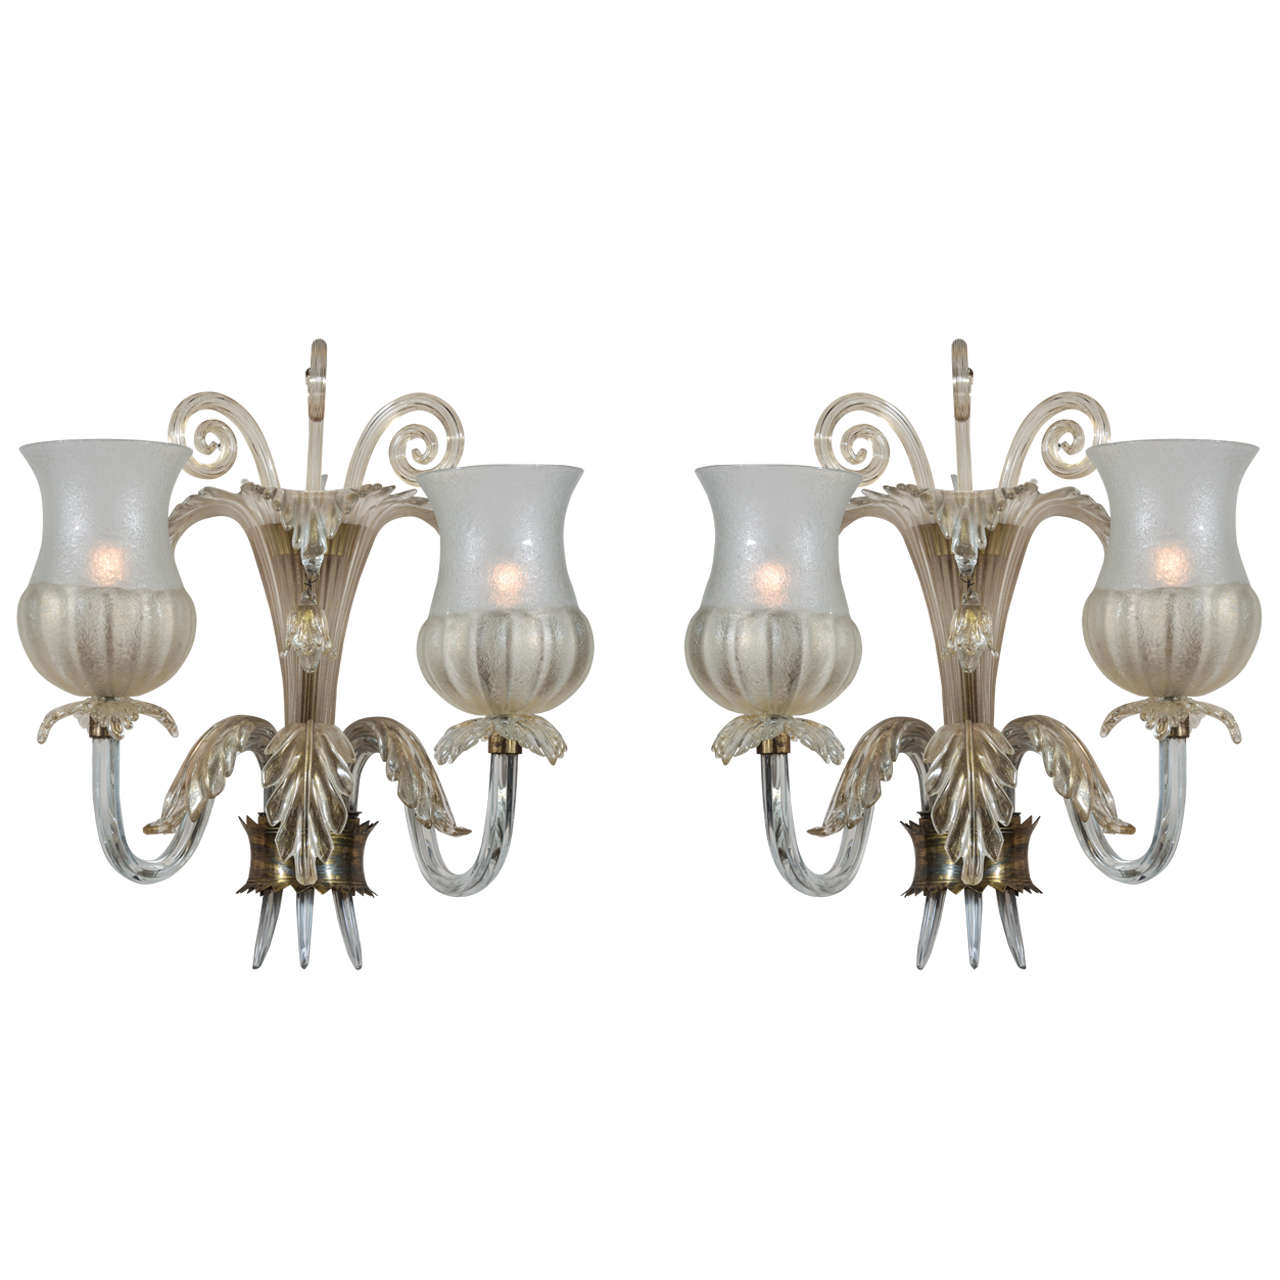 Pair Of Fume 2 Arm Murano Glass Sconces By Seguso At 1stdibs